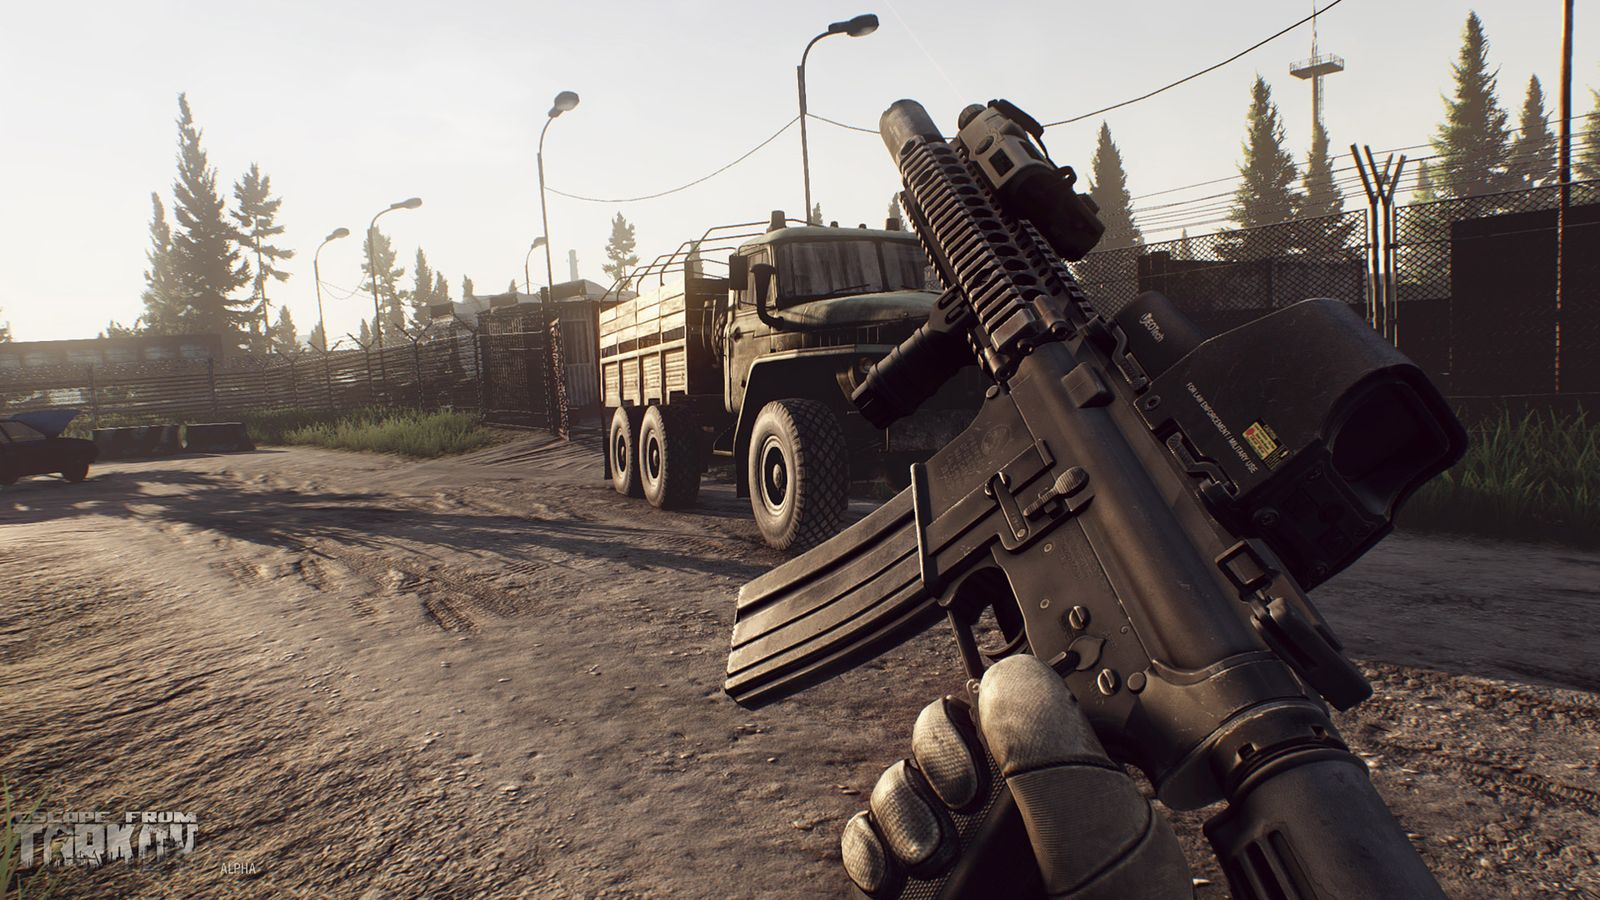 How to find extraction point in escape from tarkov